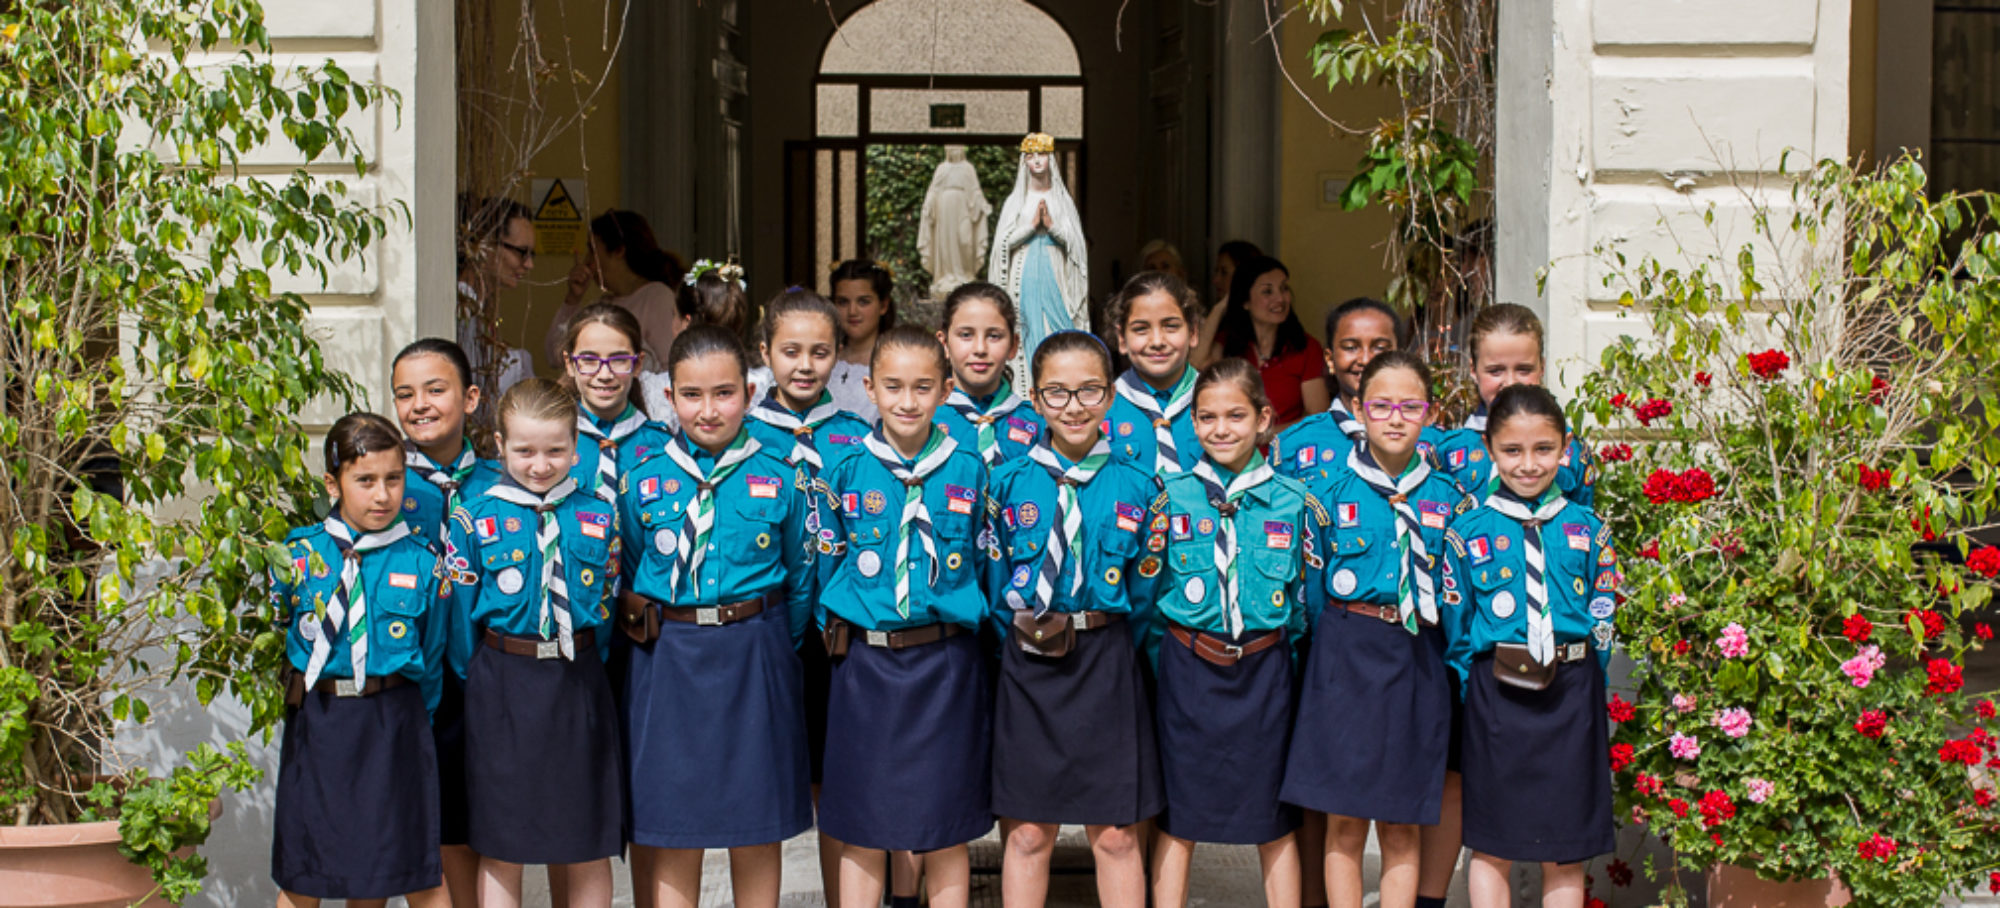 St Joseph Junior School Sliema